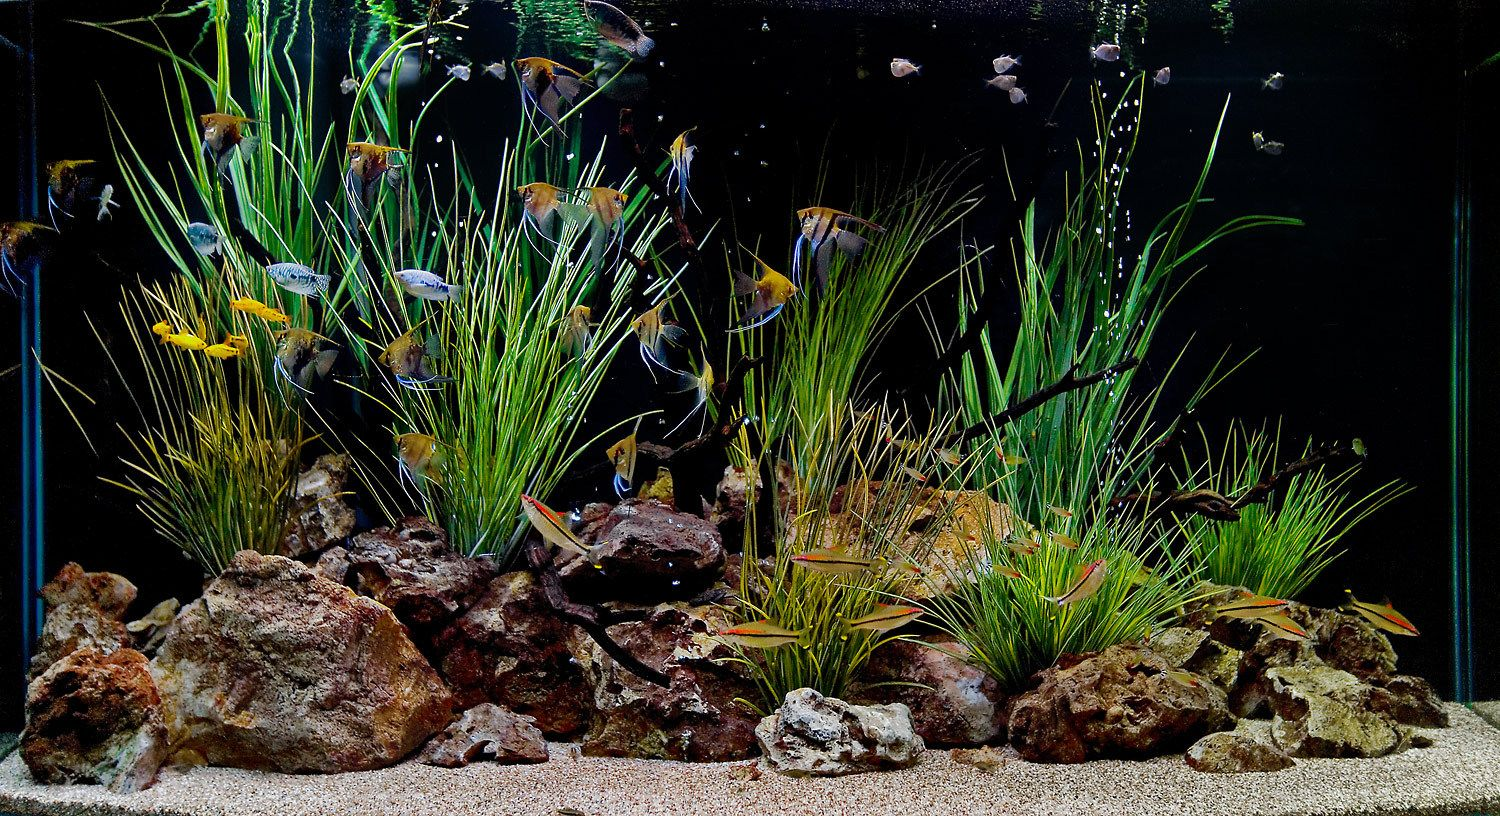 Freshwater aquarium fish by size - Freshwater Aquarium Design Ideas Aquarium Design Group Custom Aquarium Design Installation And Service